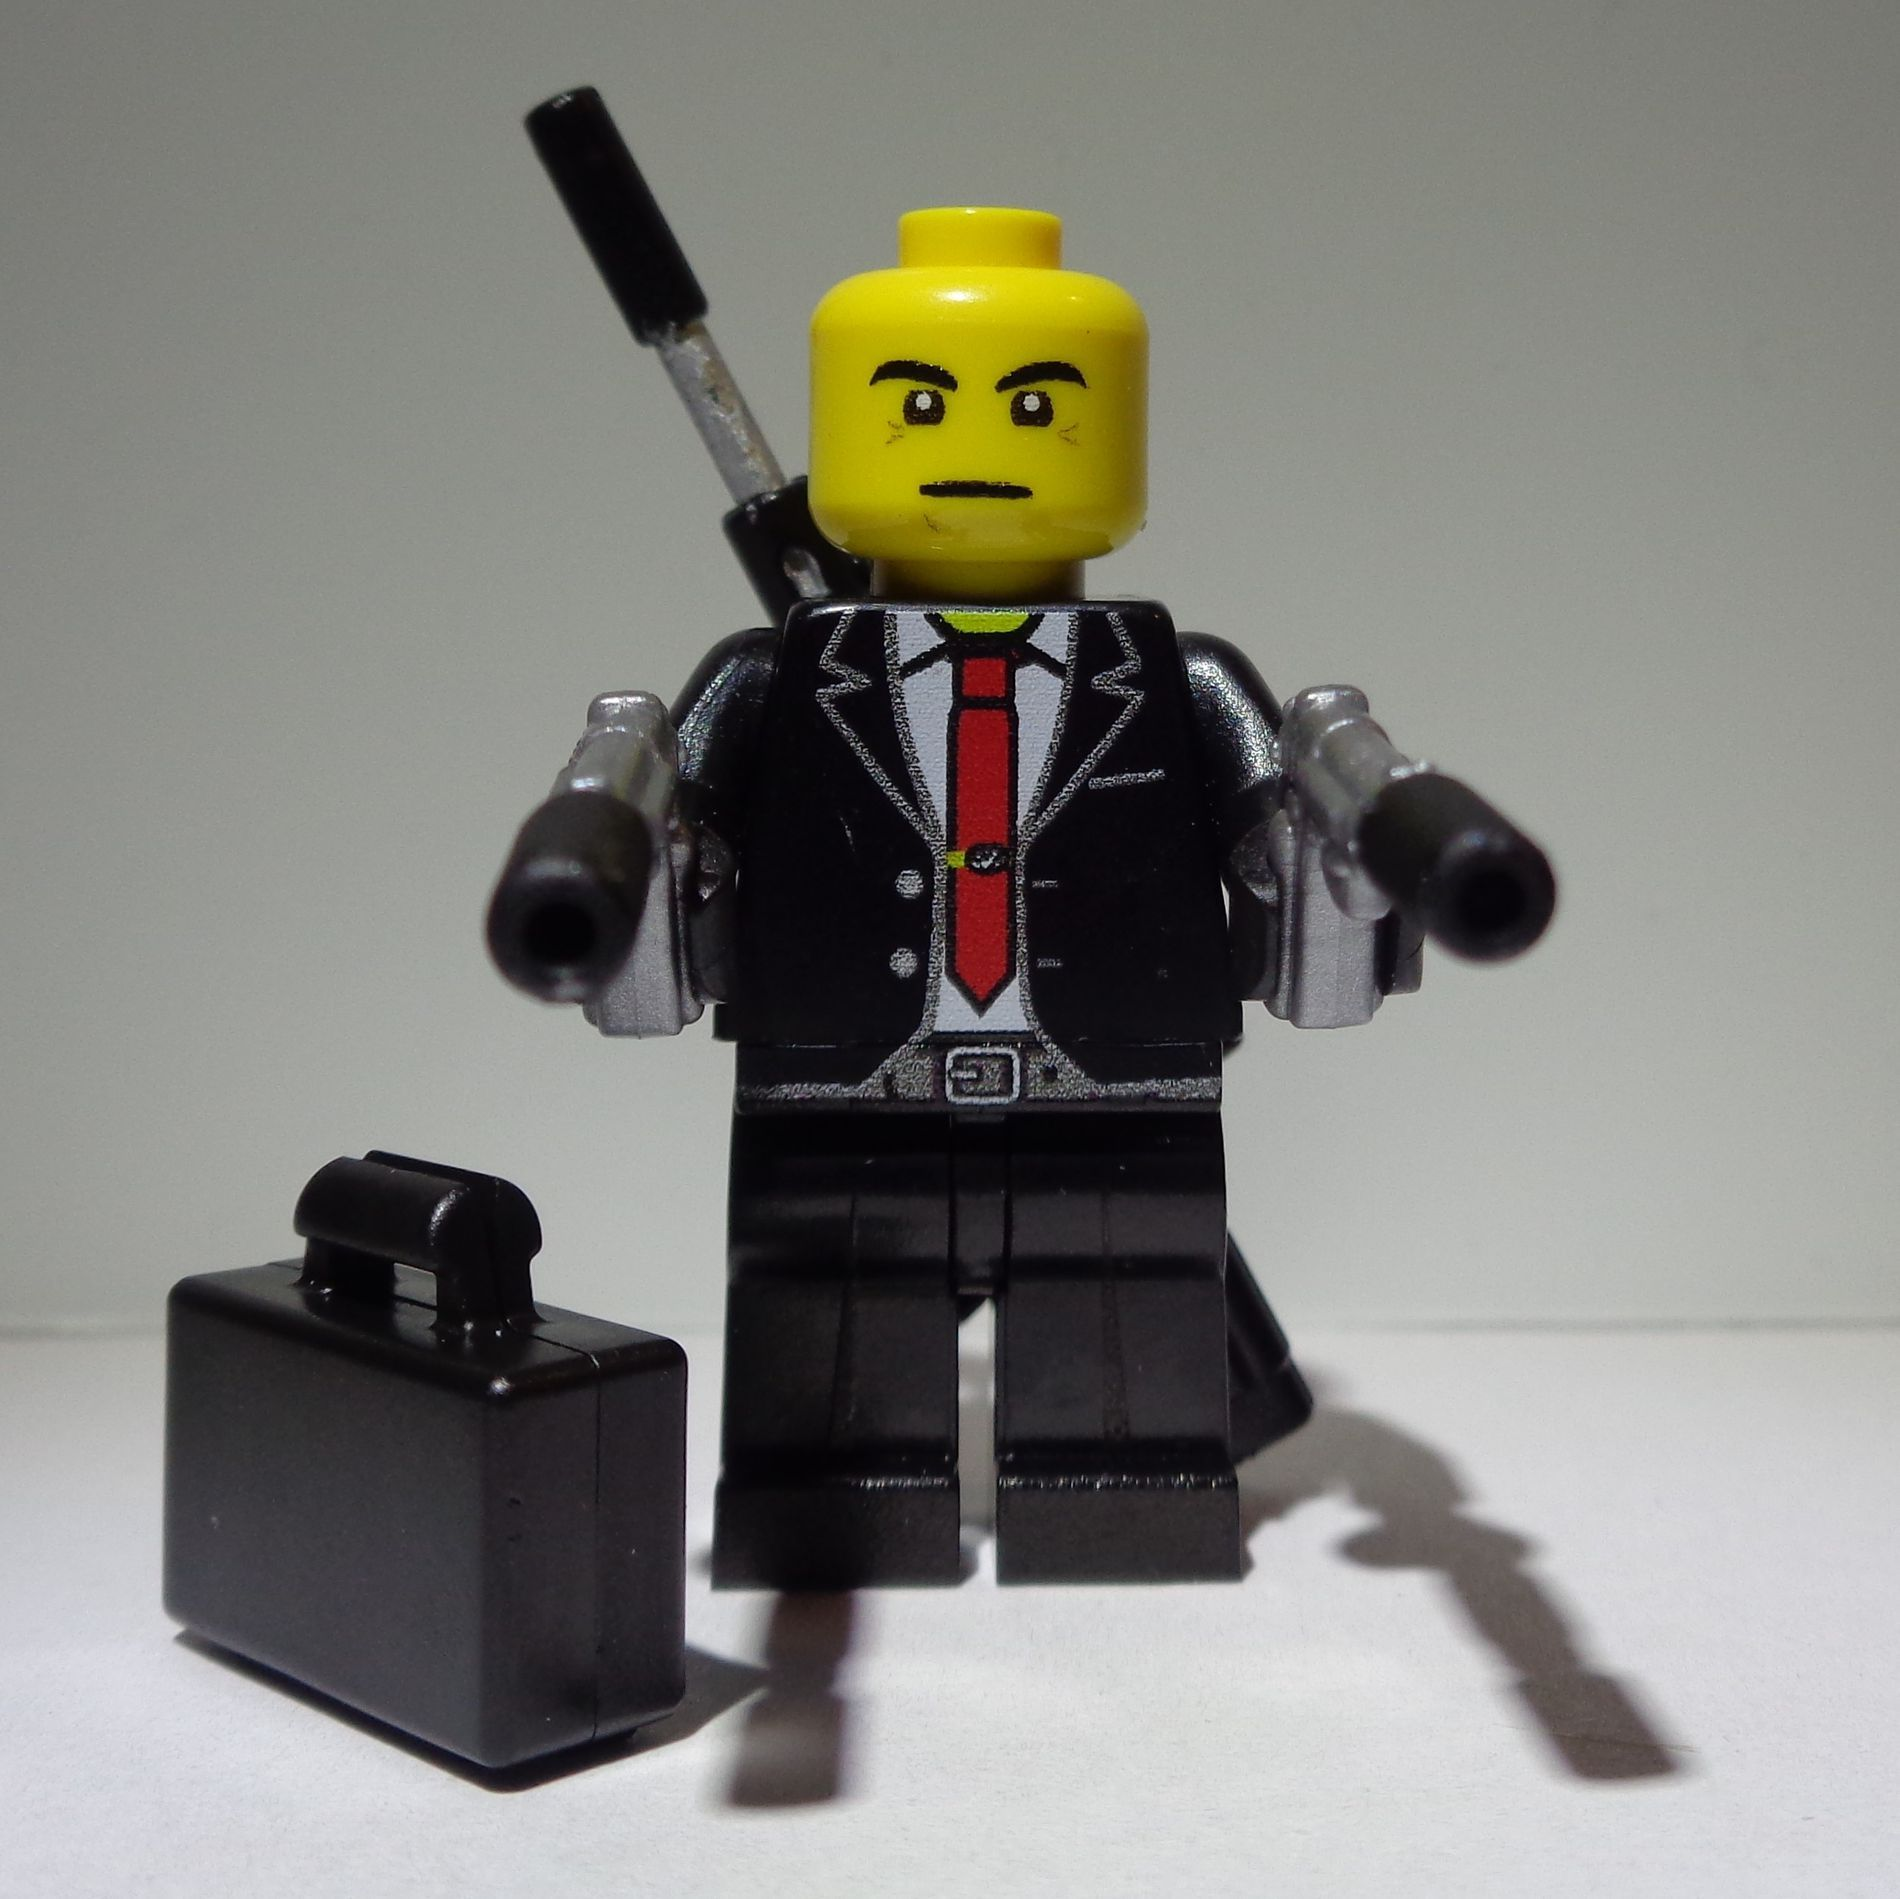 Agent 47 From Hitman As A Lego Minifigure By Pete Anslow